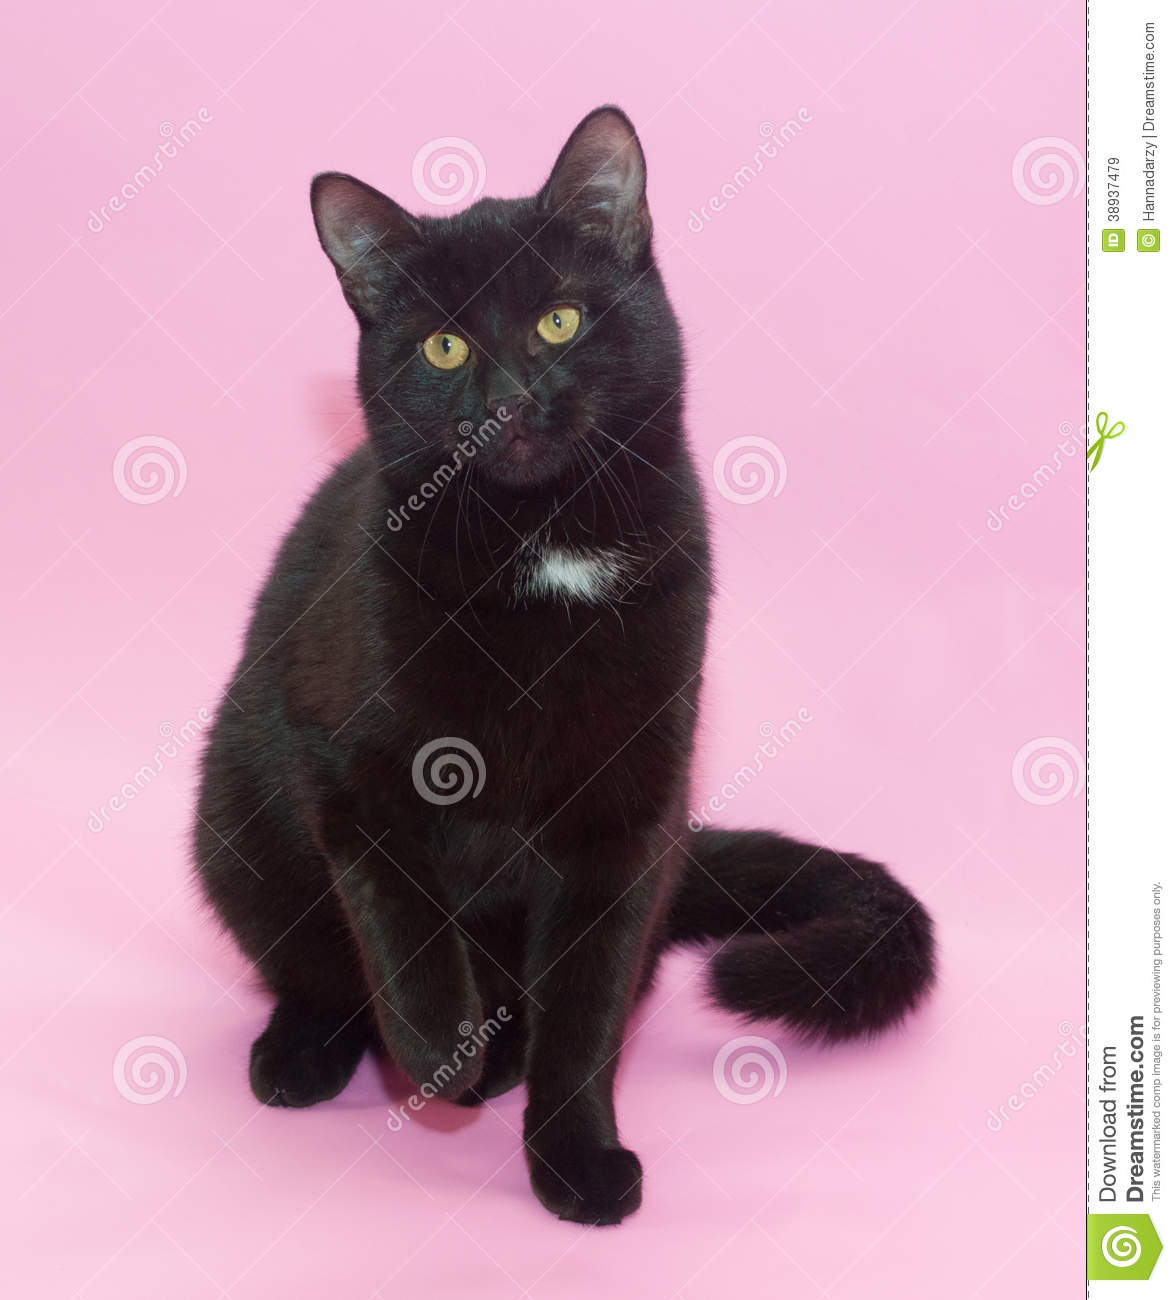 Black Cat With White Spot On The Chest Sitting Stock Photo